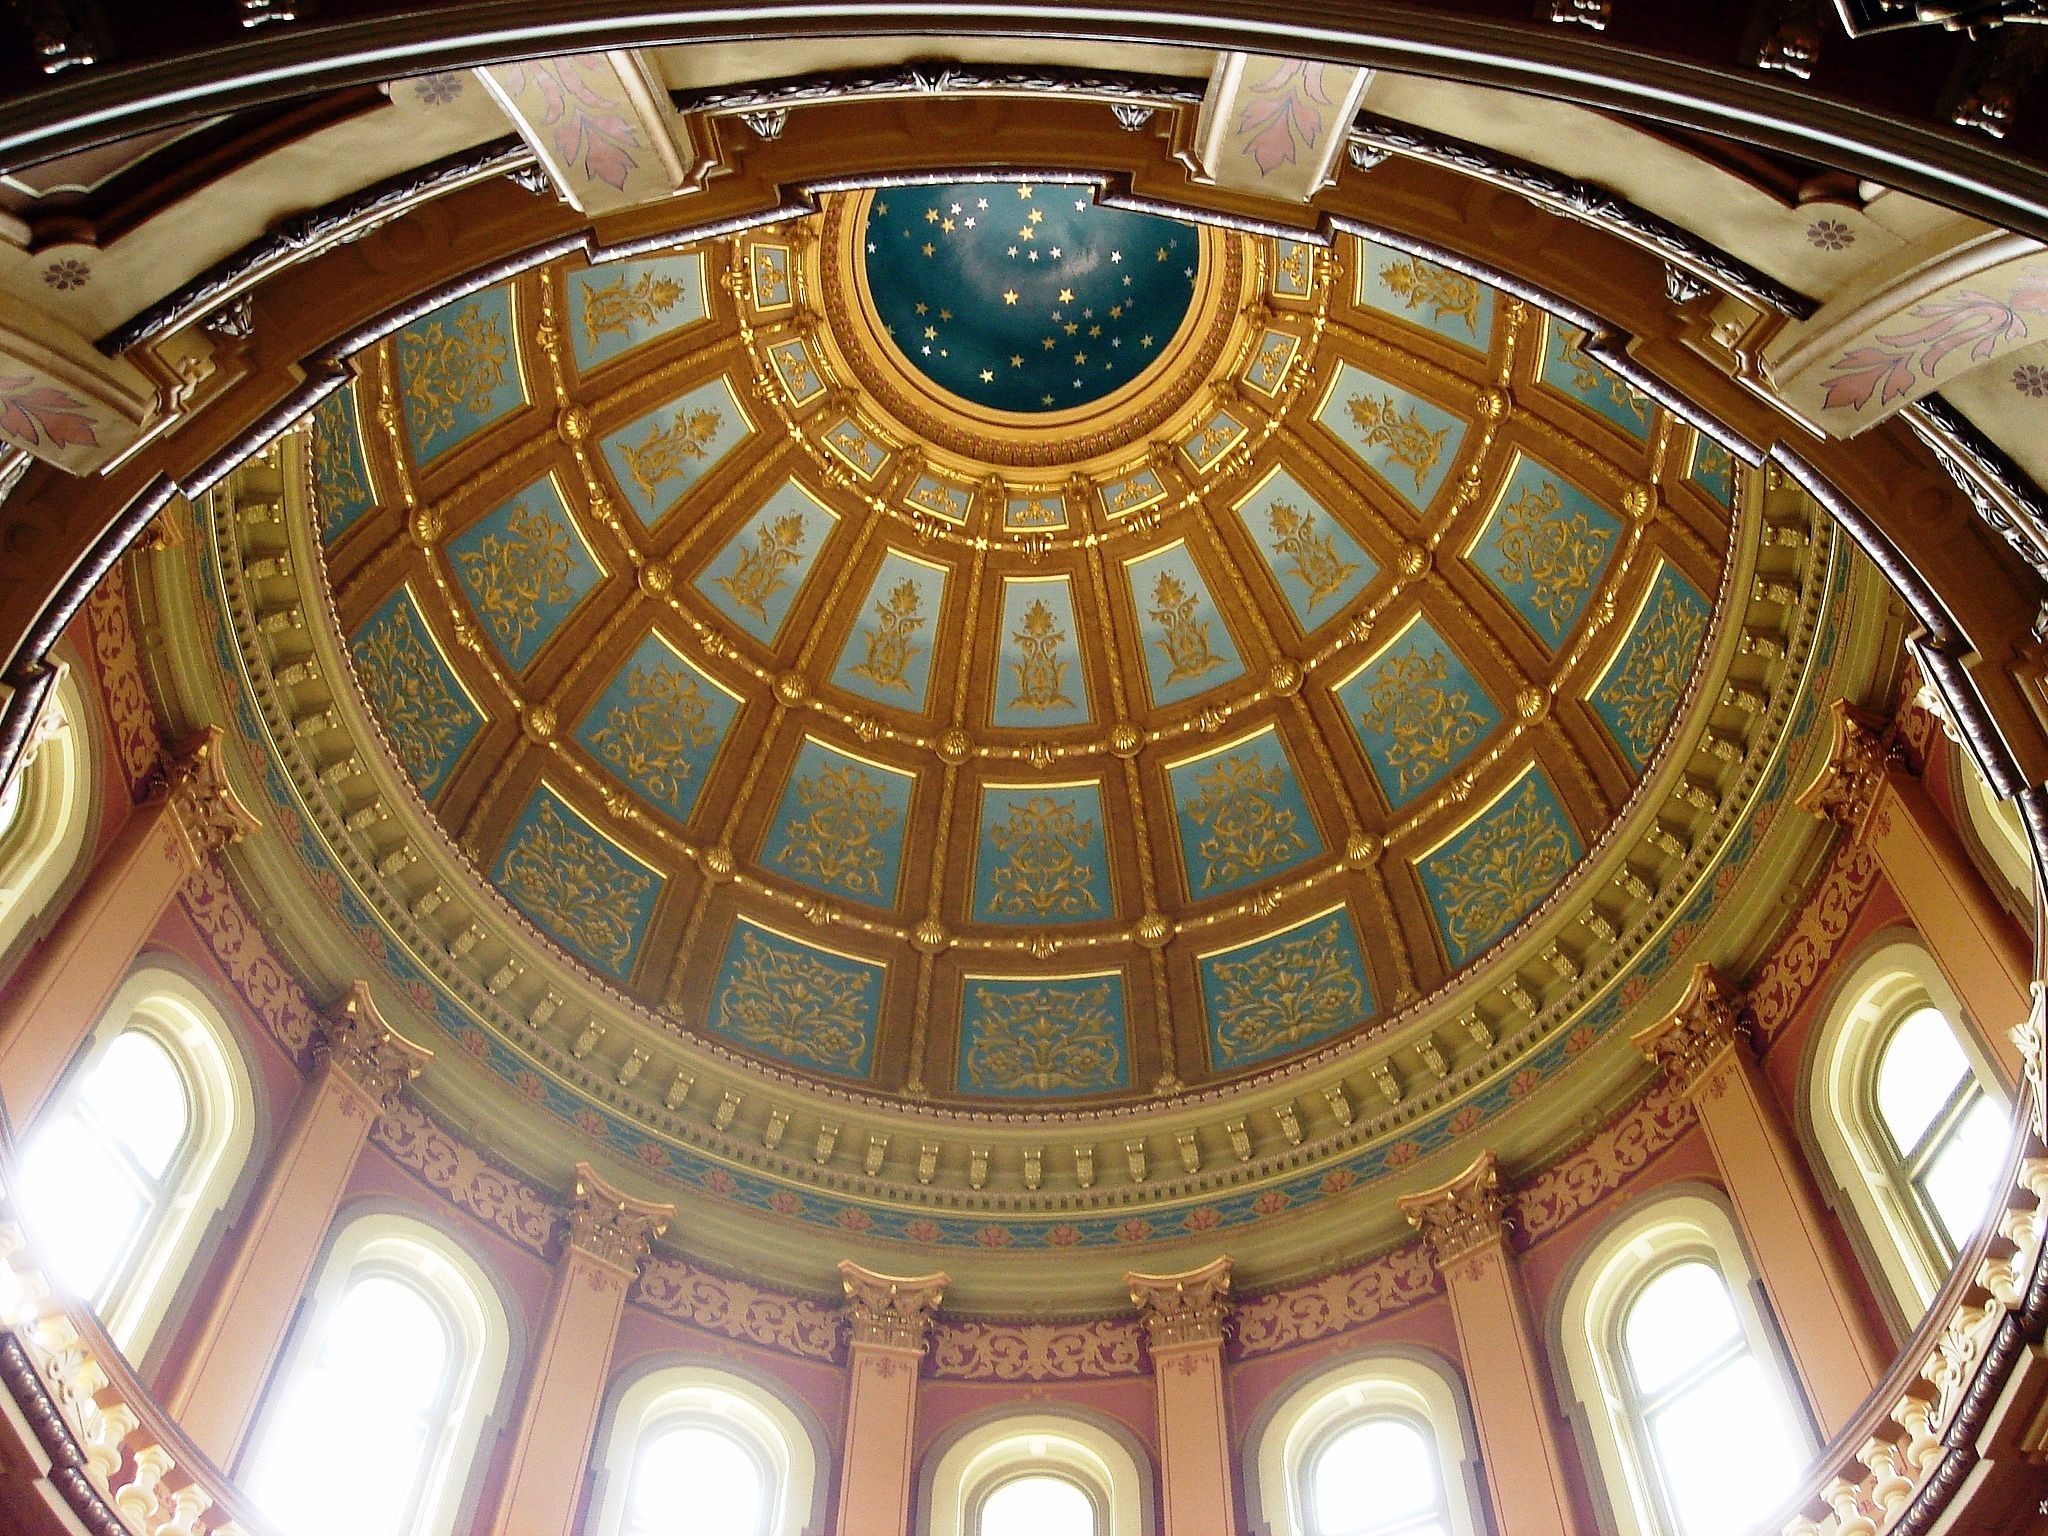 Ceiling design, Ceilings and Design interiors on Pinterest